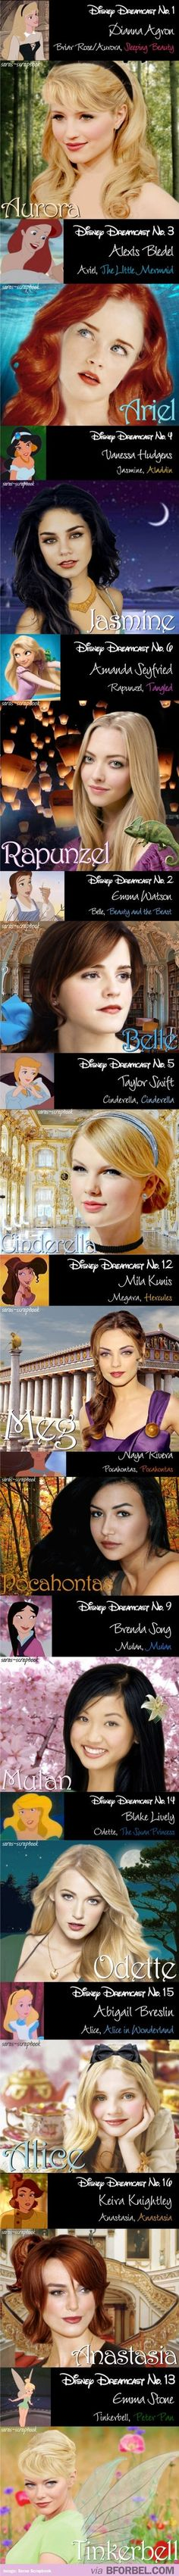 Wow, I never realized how much Taylor swift looks like Cinderella